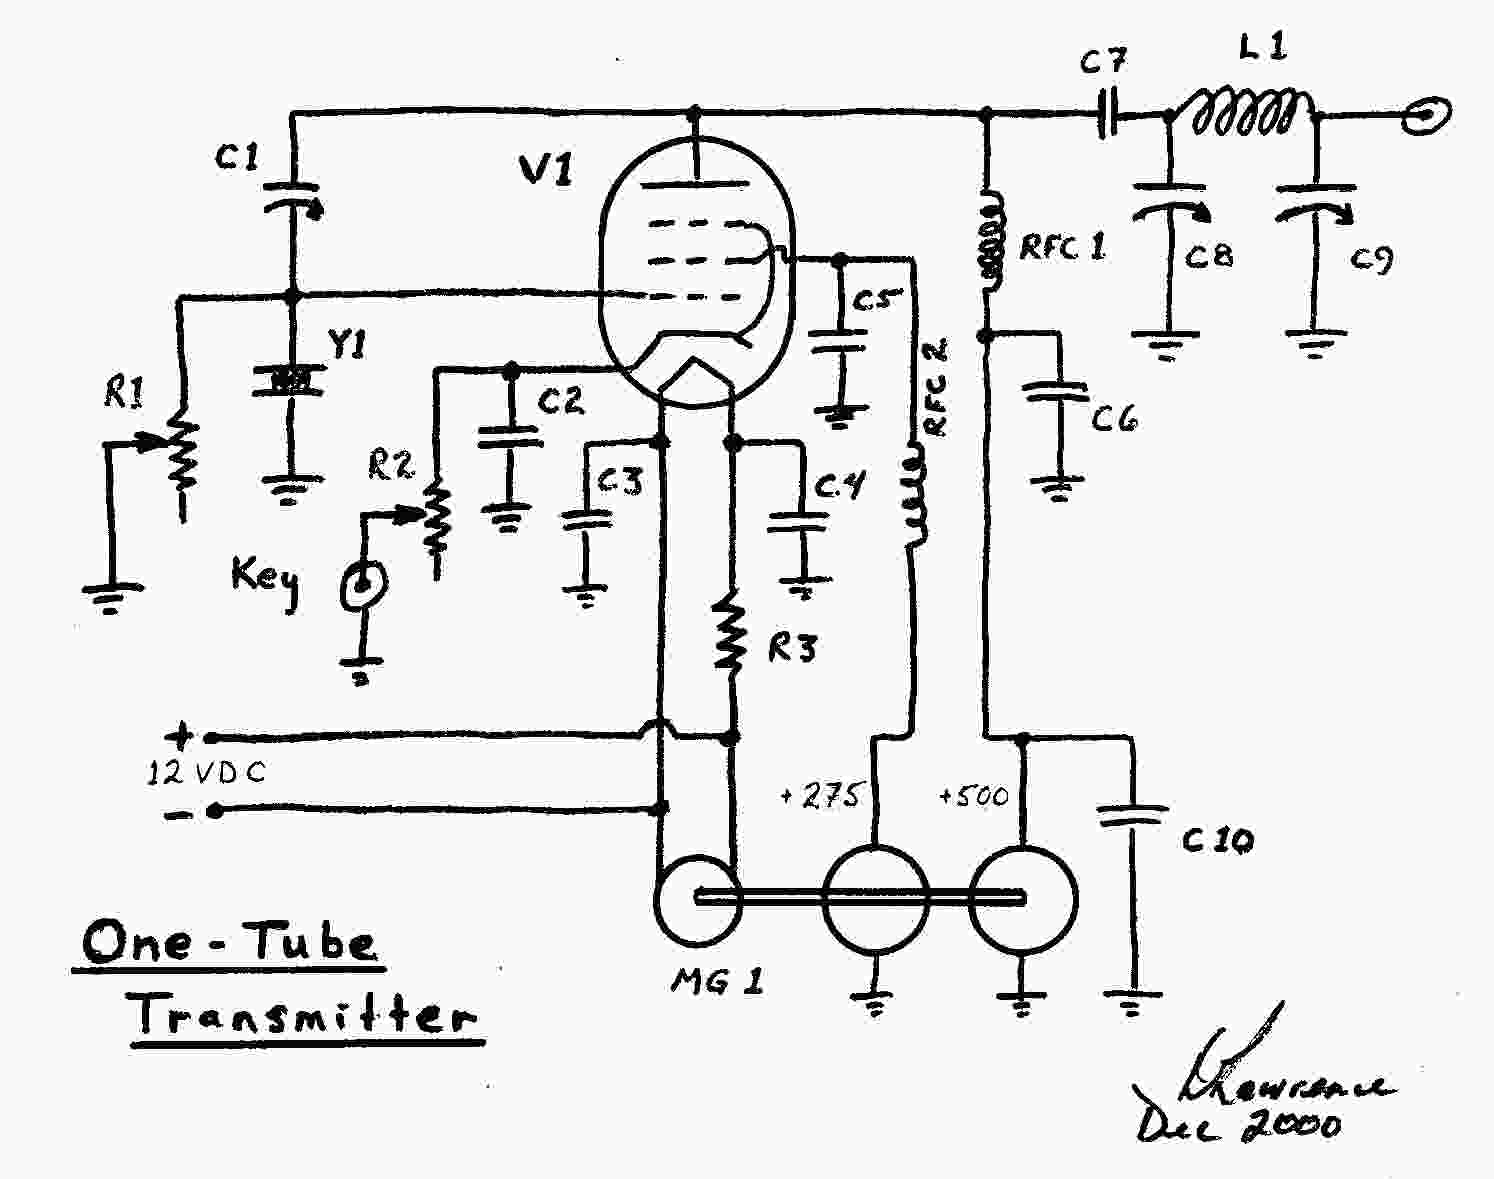 observations on the one tube transmitter